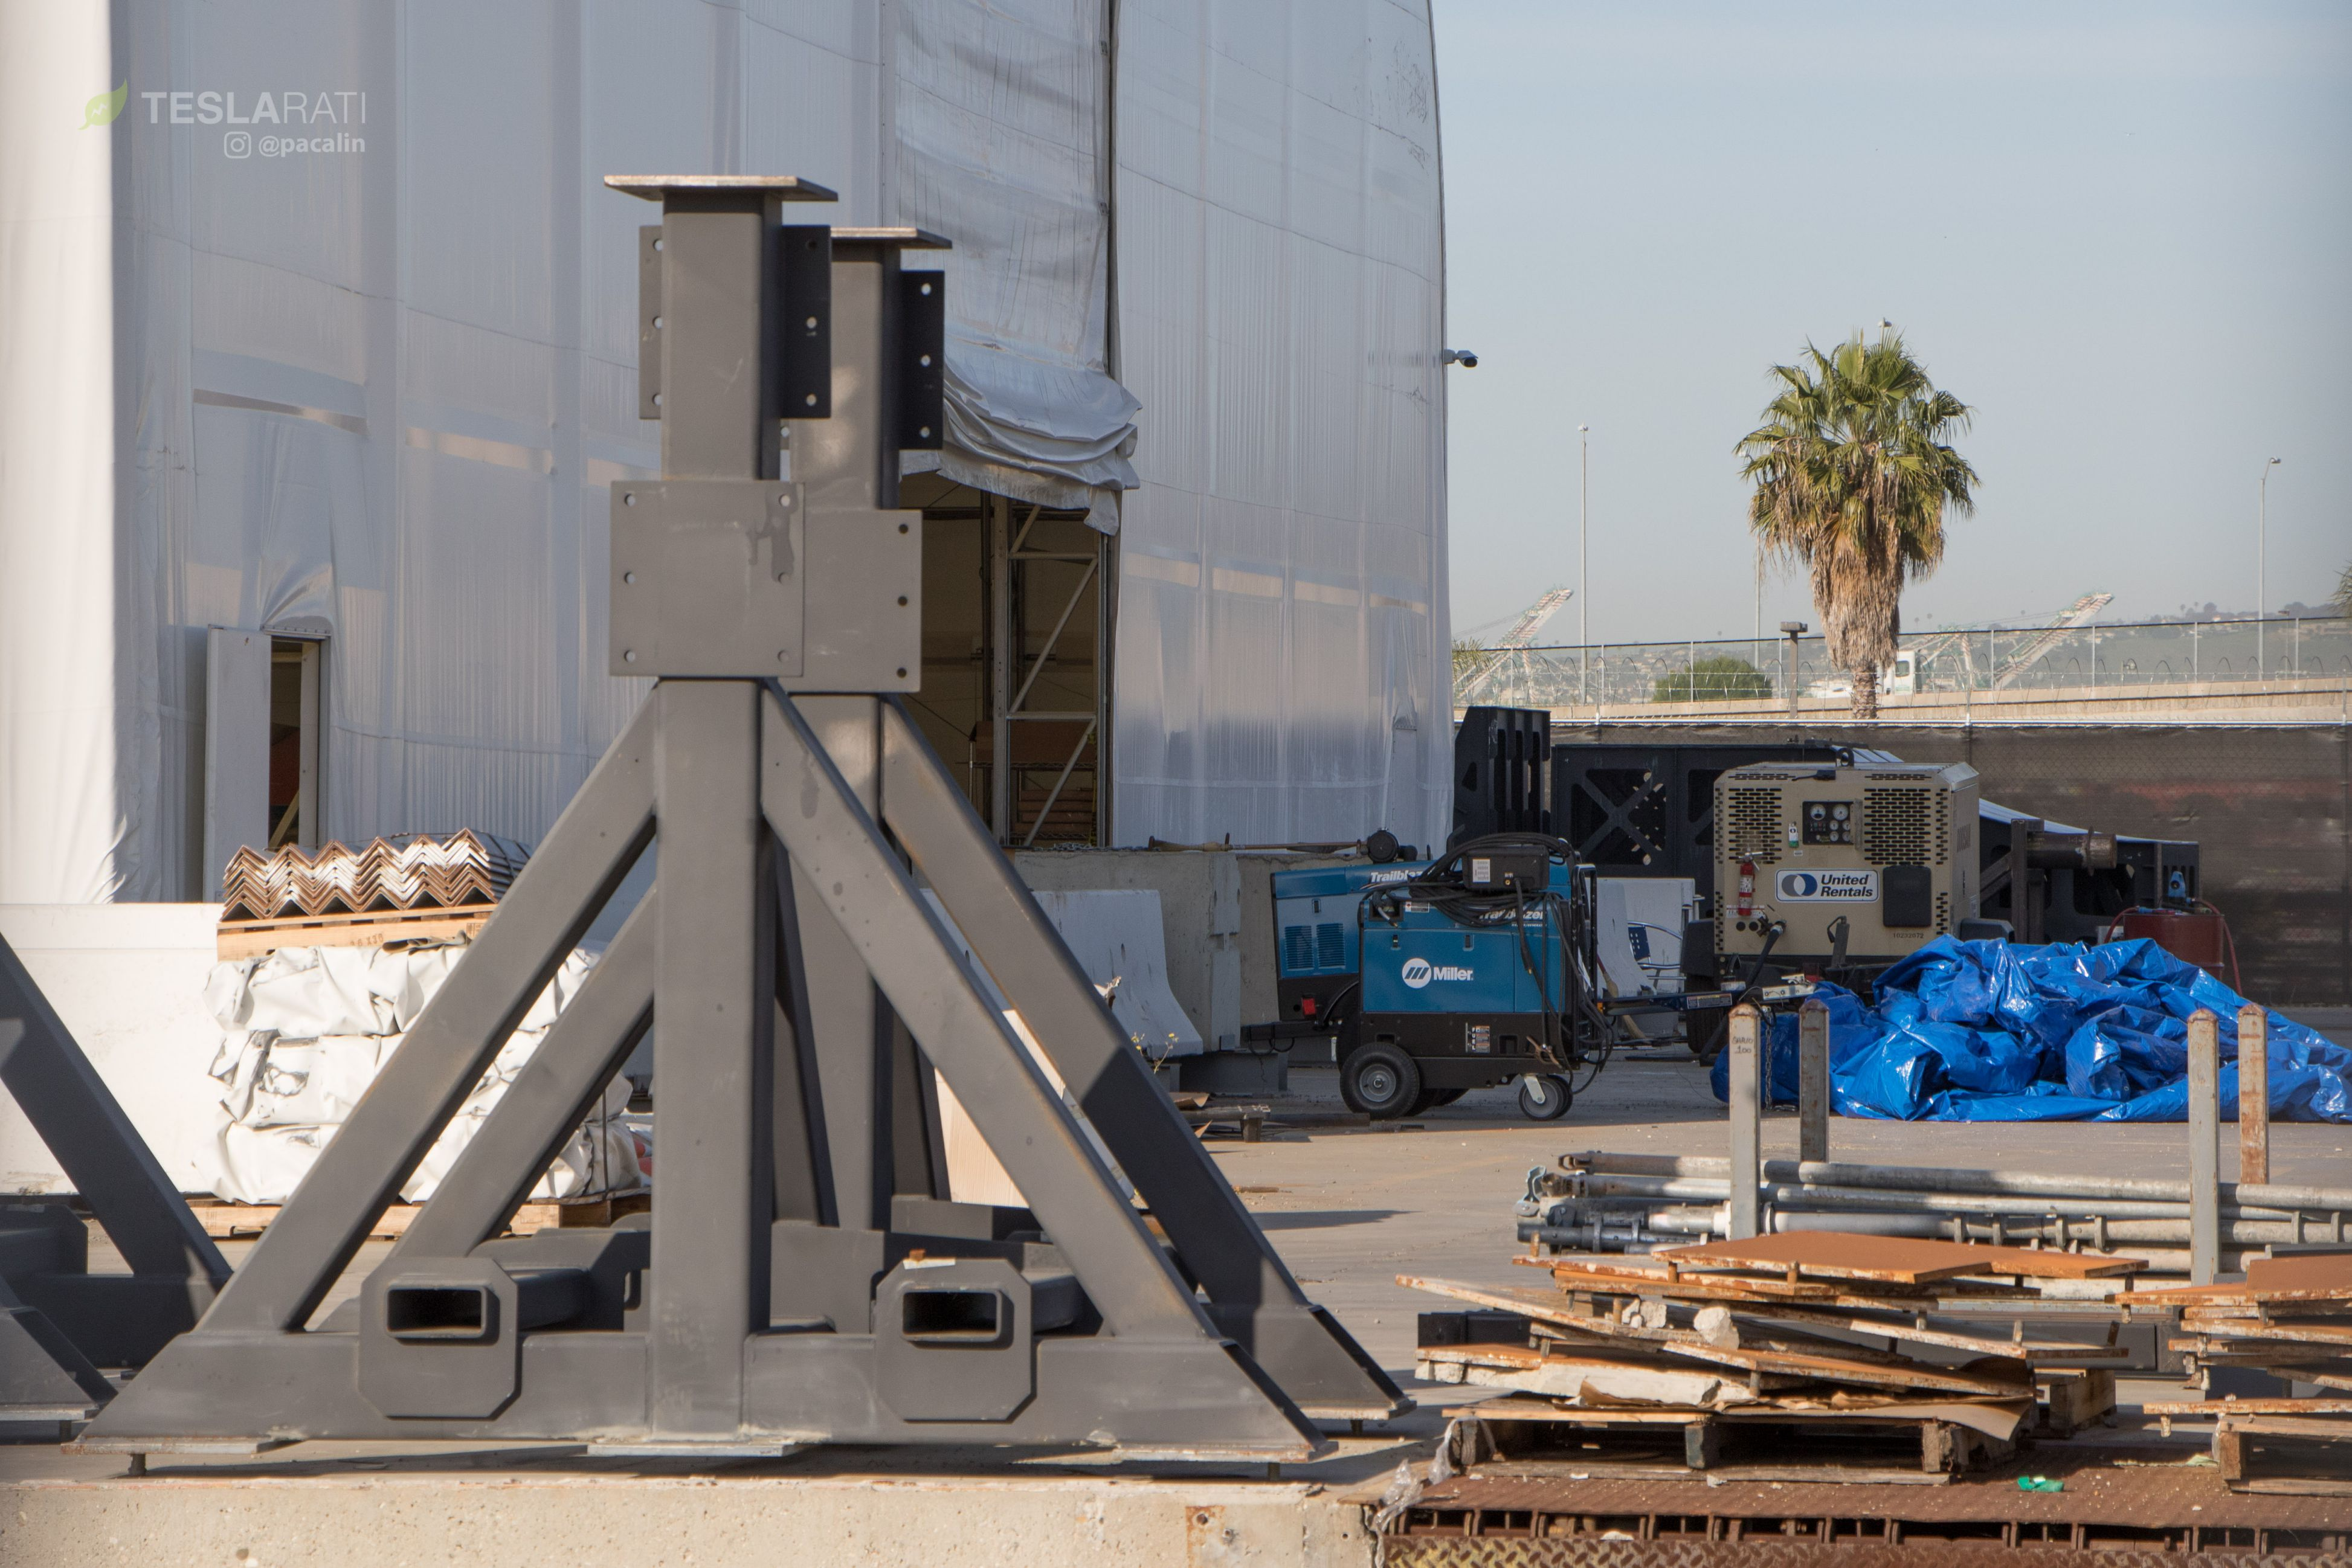 SpaceX BFR tent tooling 2 (Pauline Acalin)